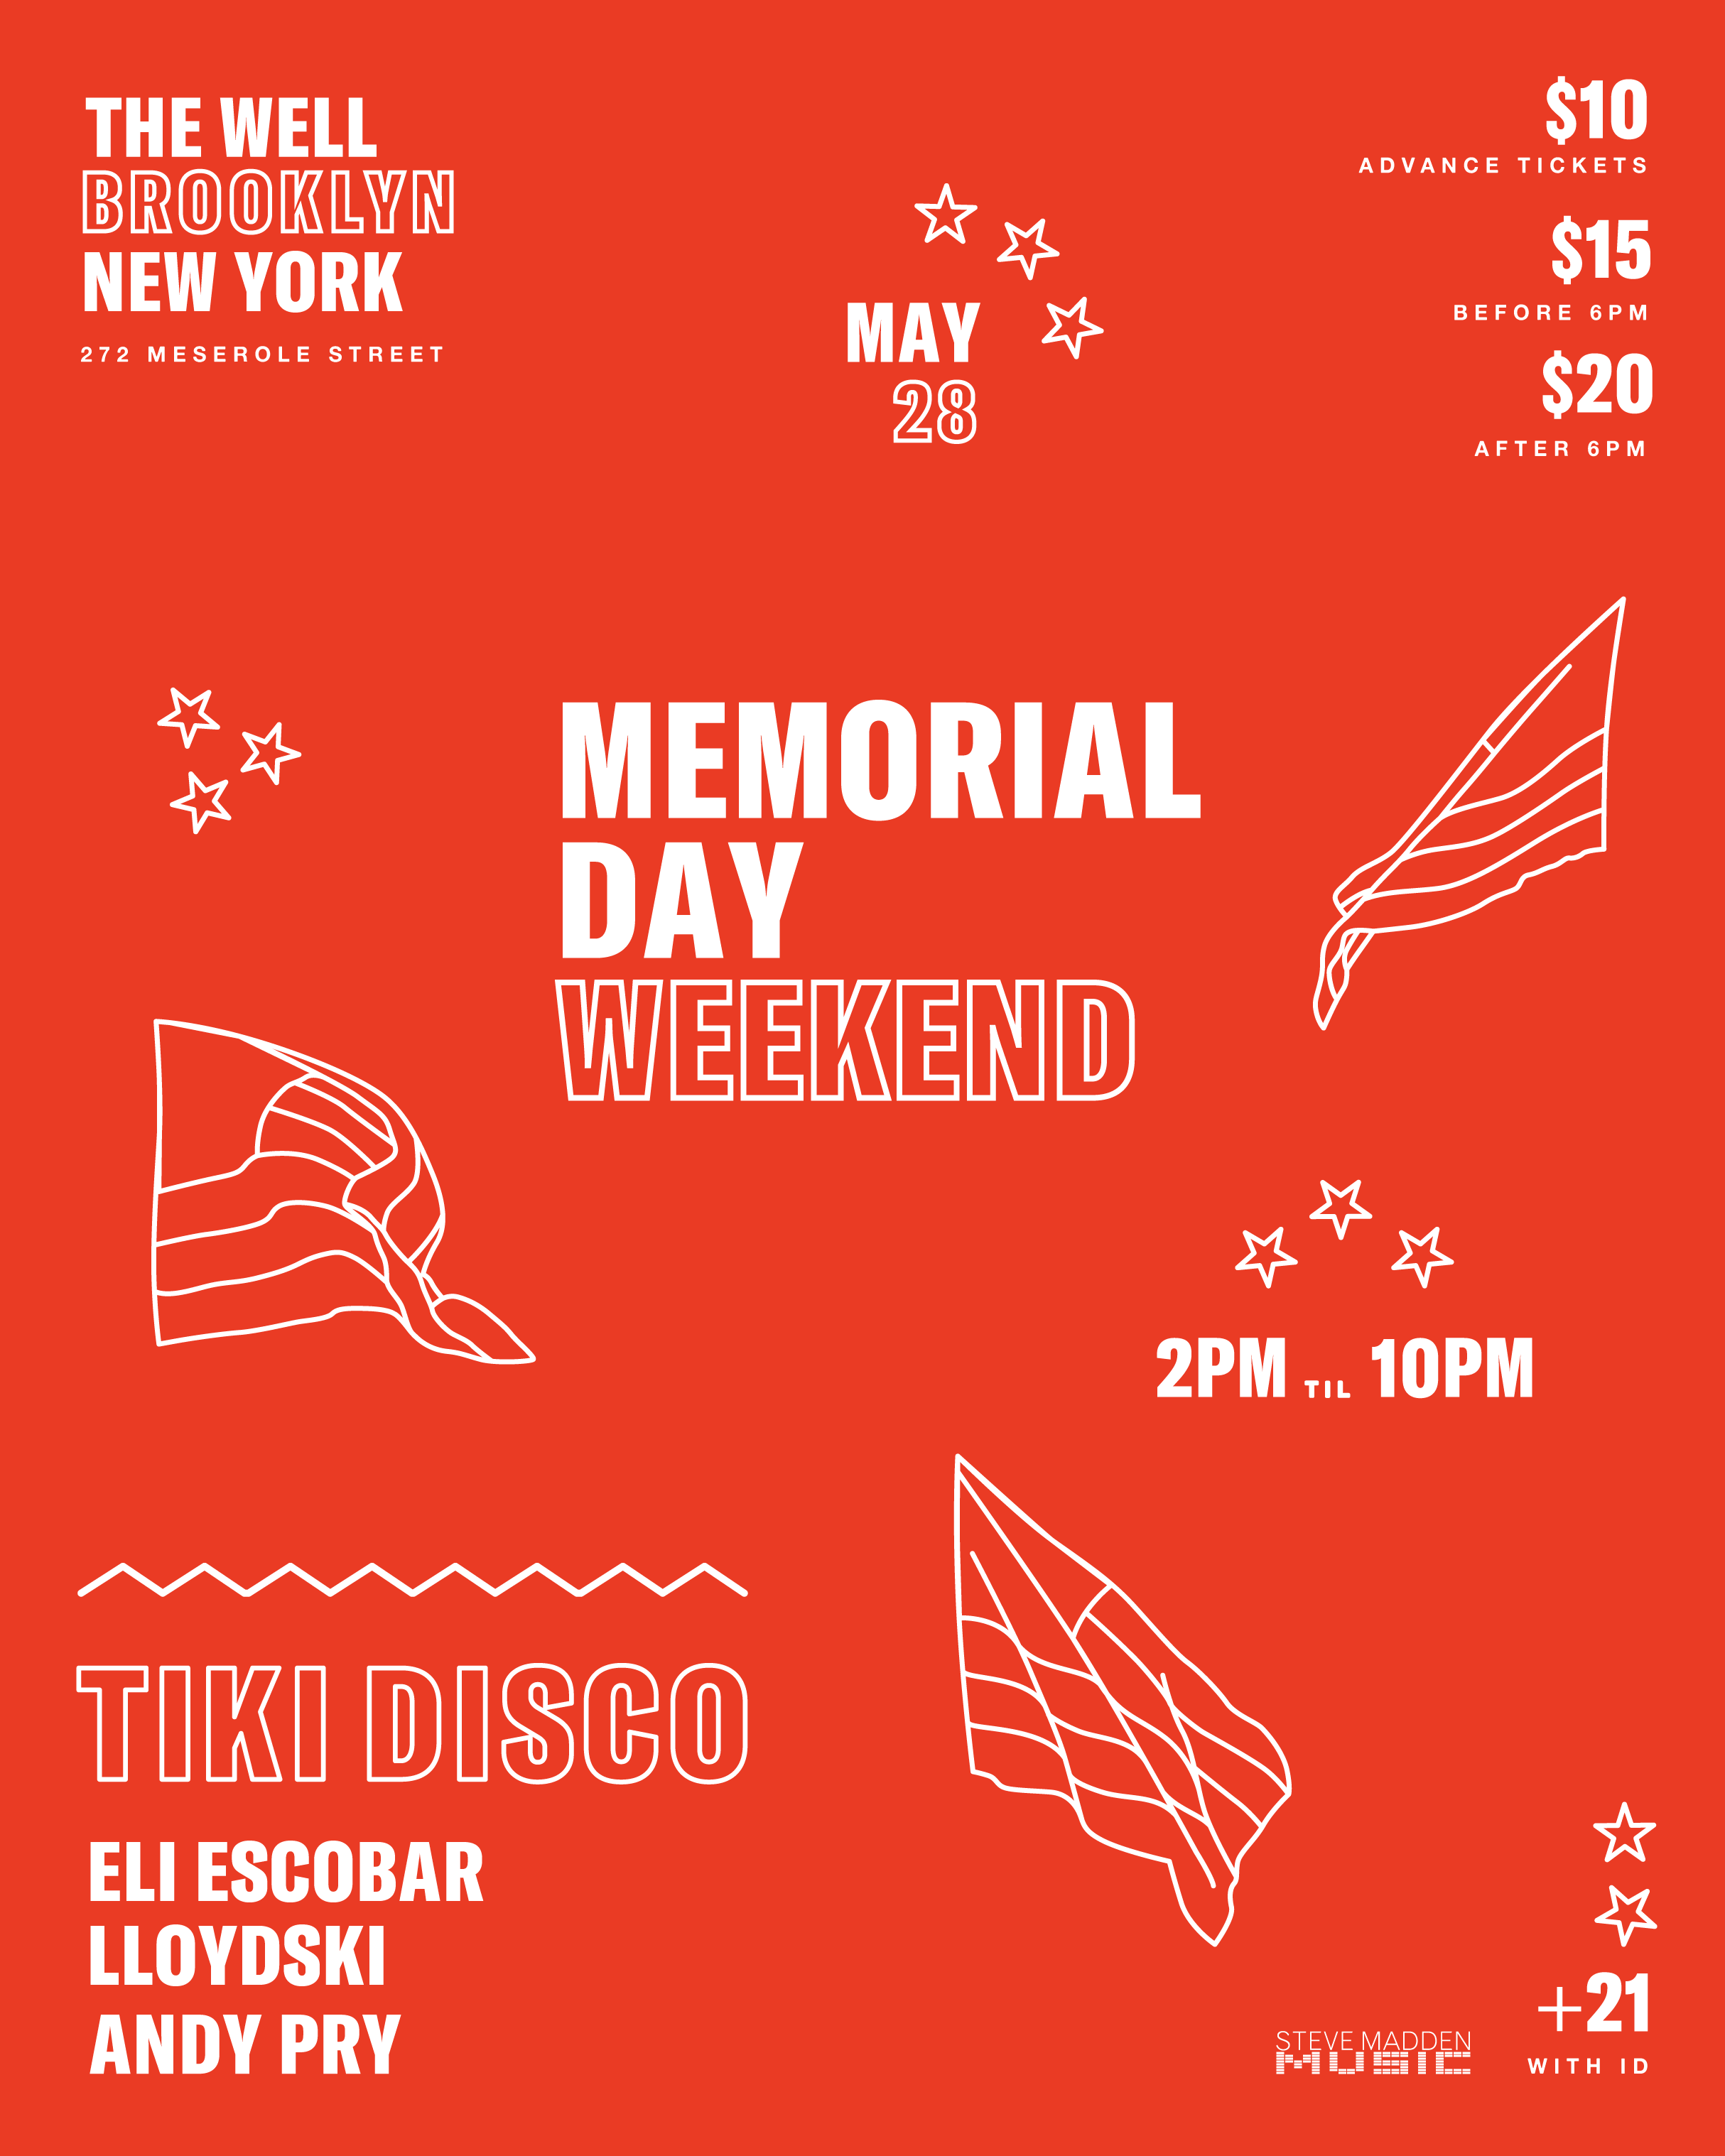 2017-05-19_tikidisco_poster_01.png